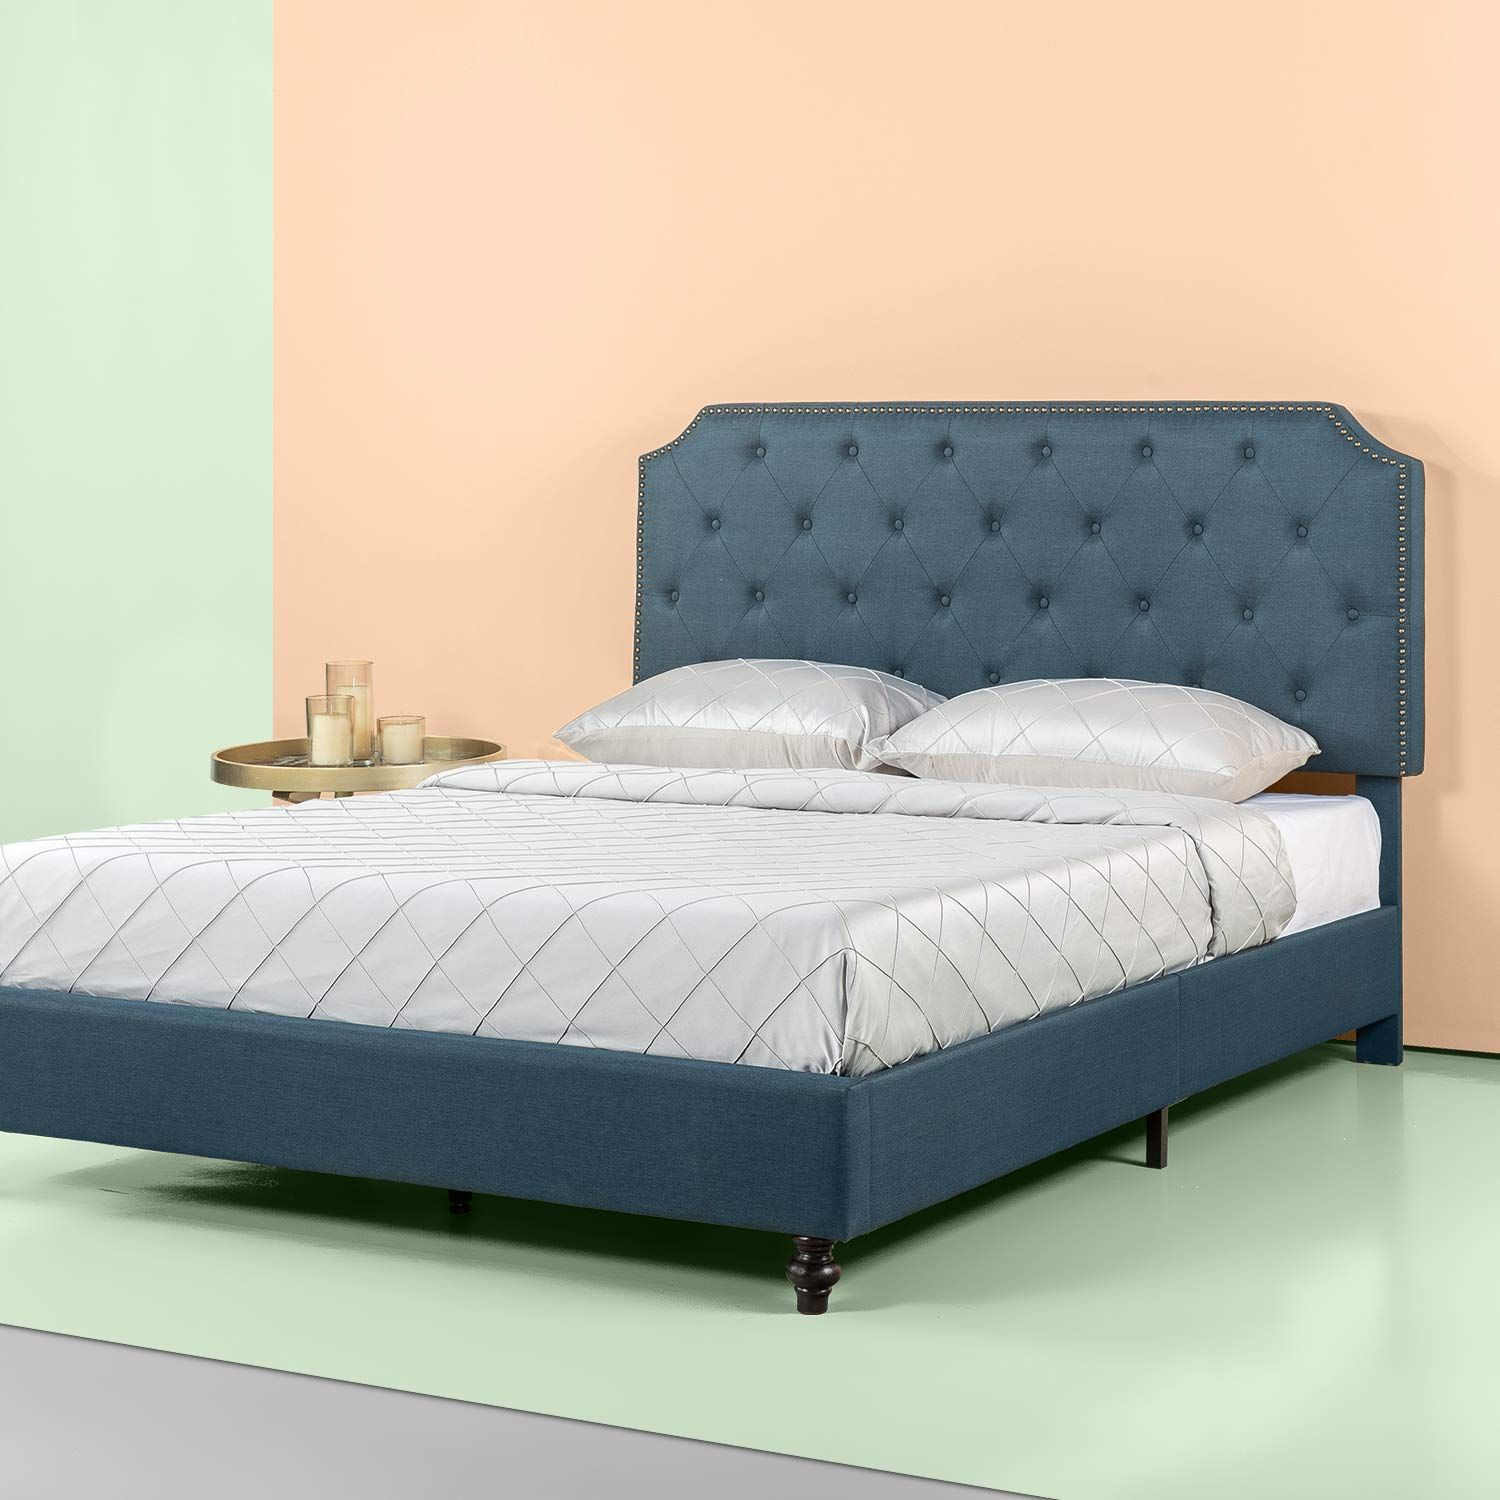 This classic upholstered platform bed by Zinus will